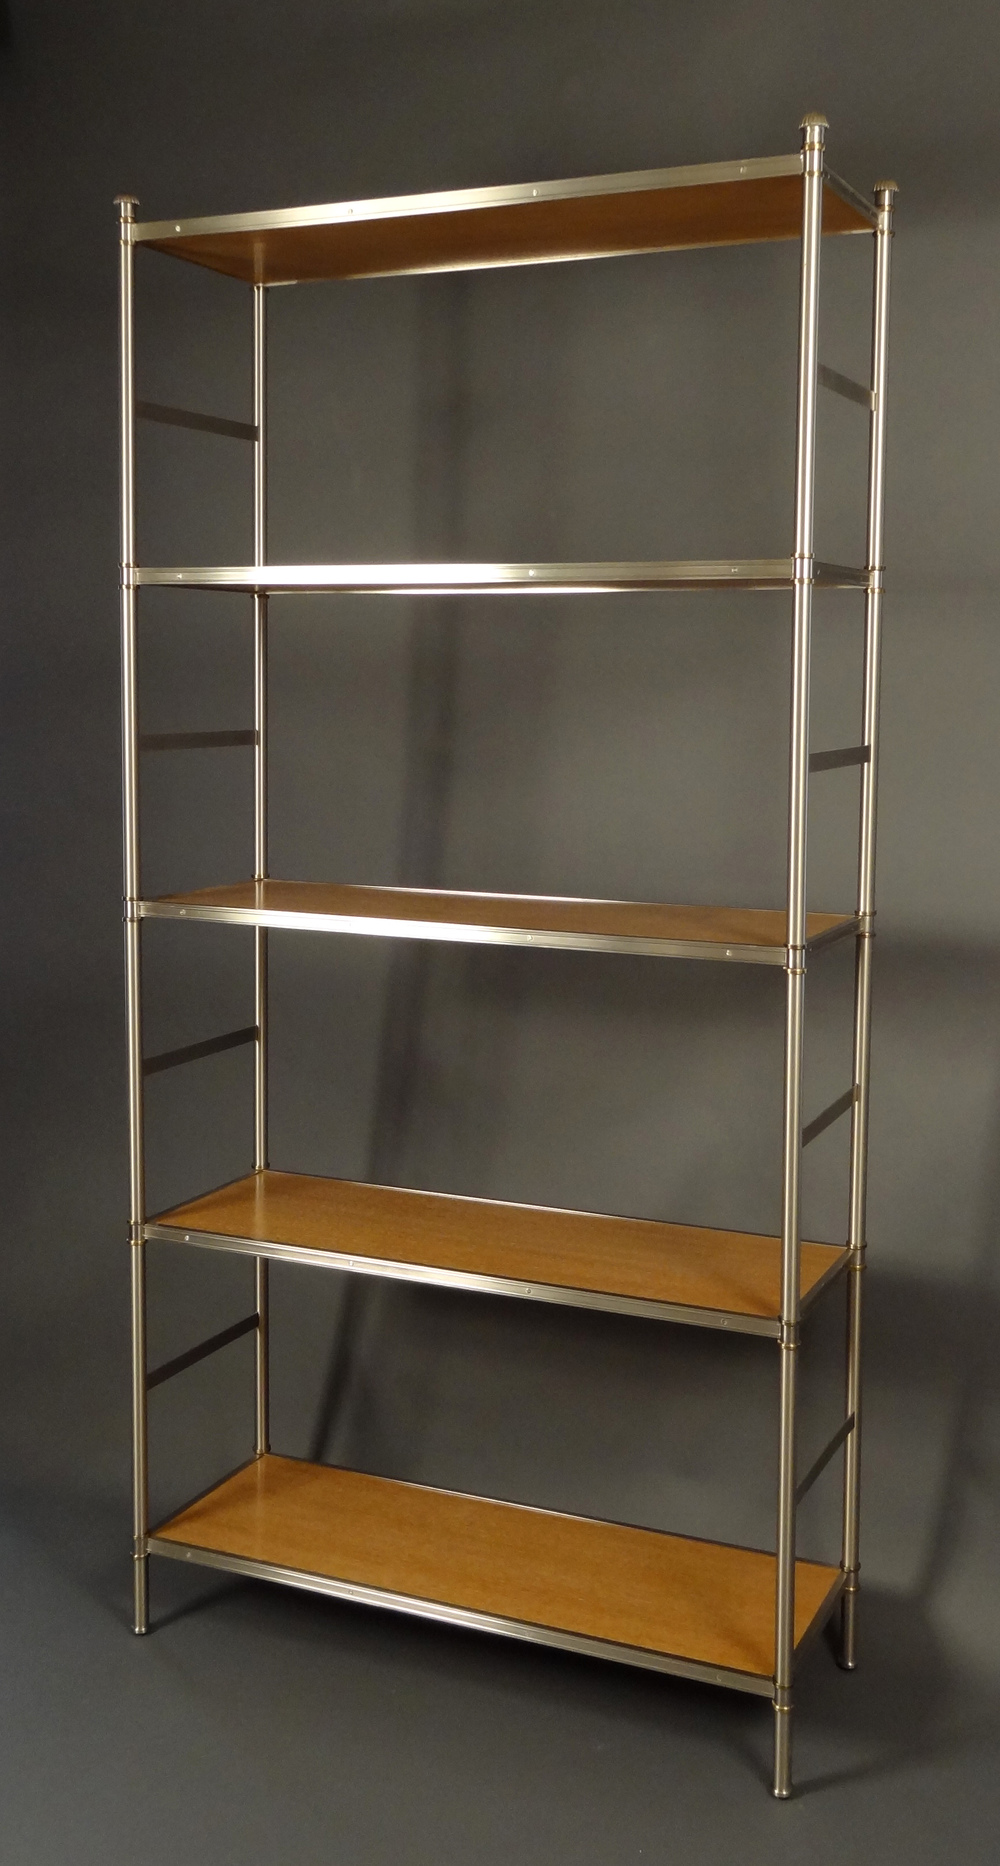 Cole Porter etagere in brushed nickel with brass details by Victoria & Son